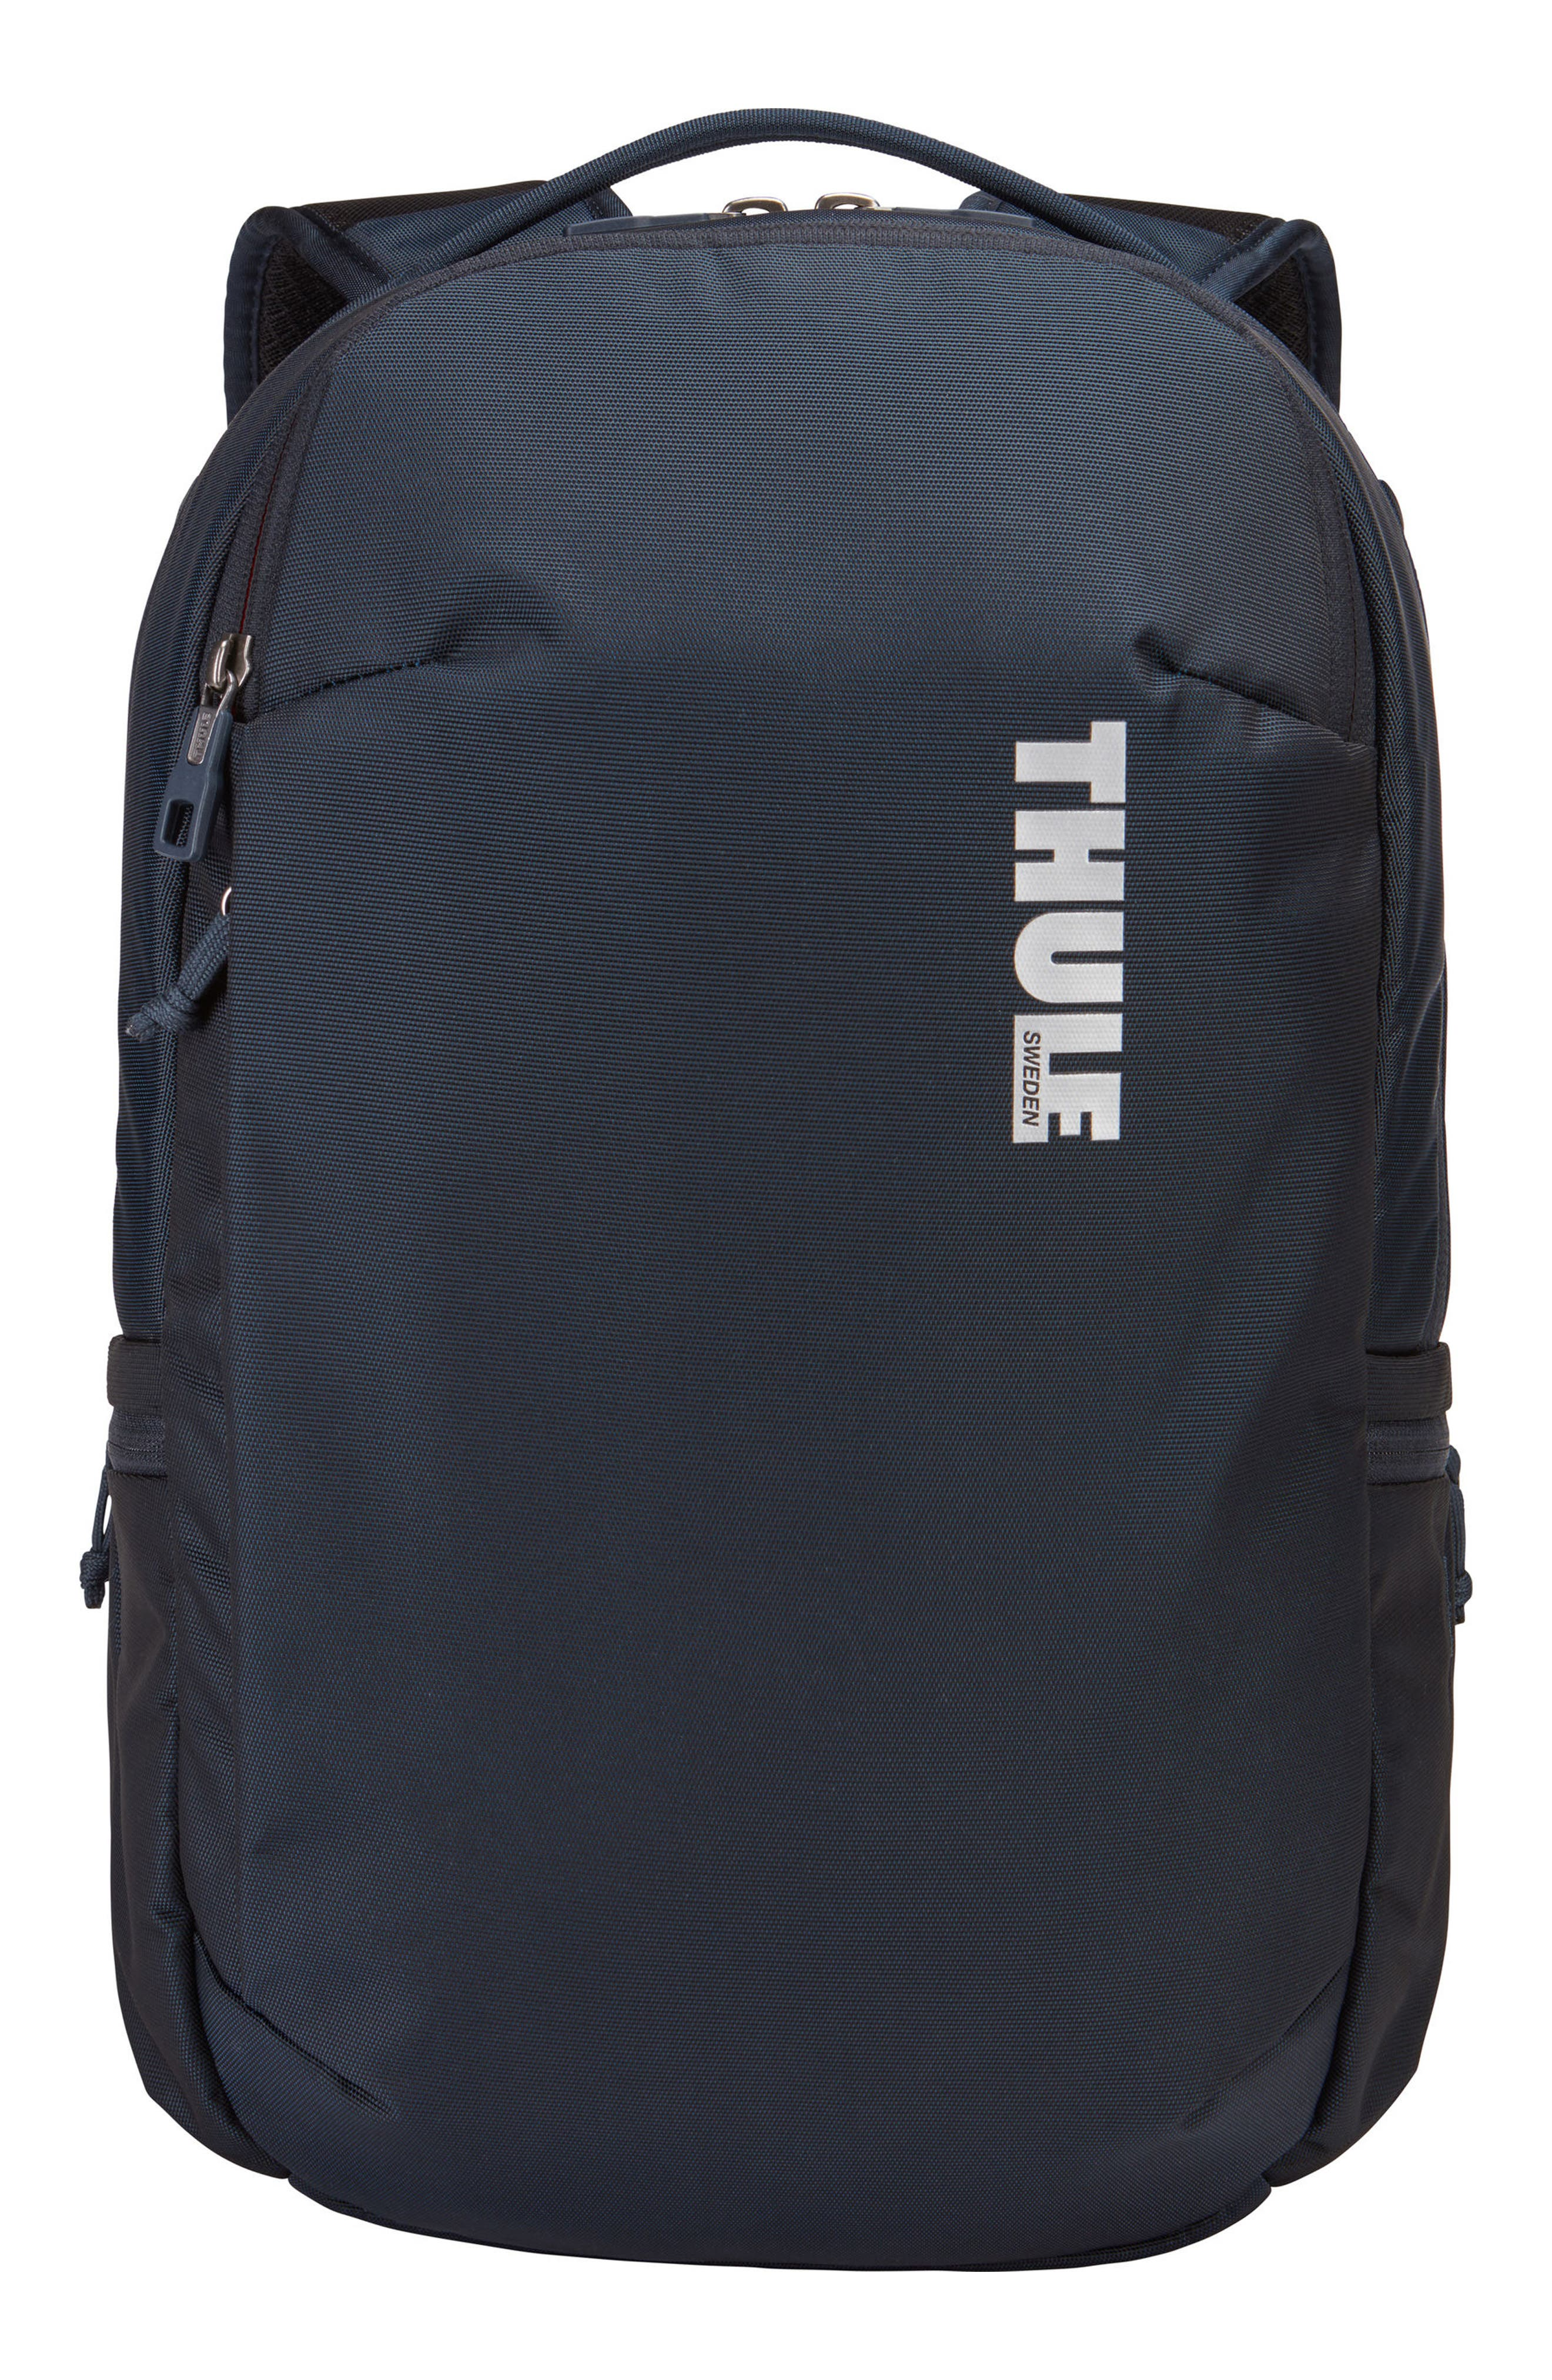 Thule Subterra 23-Liter Backpack